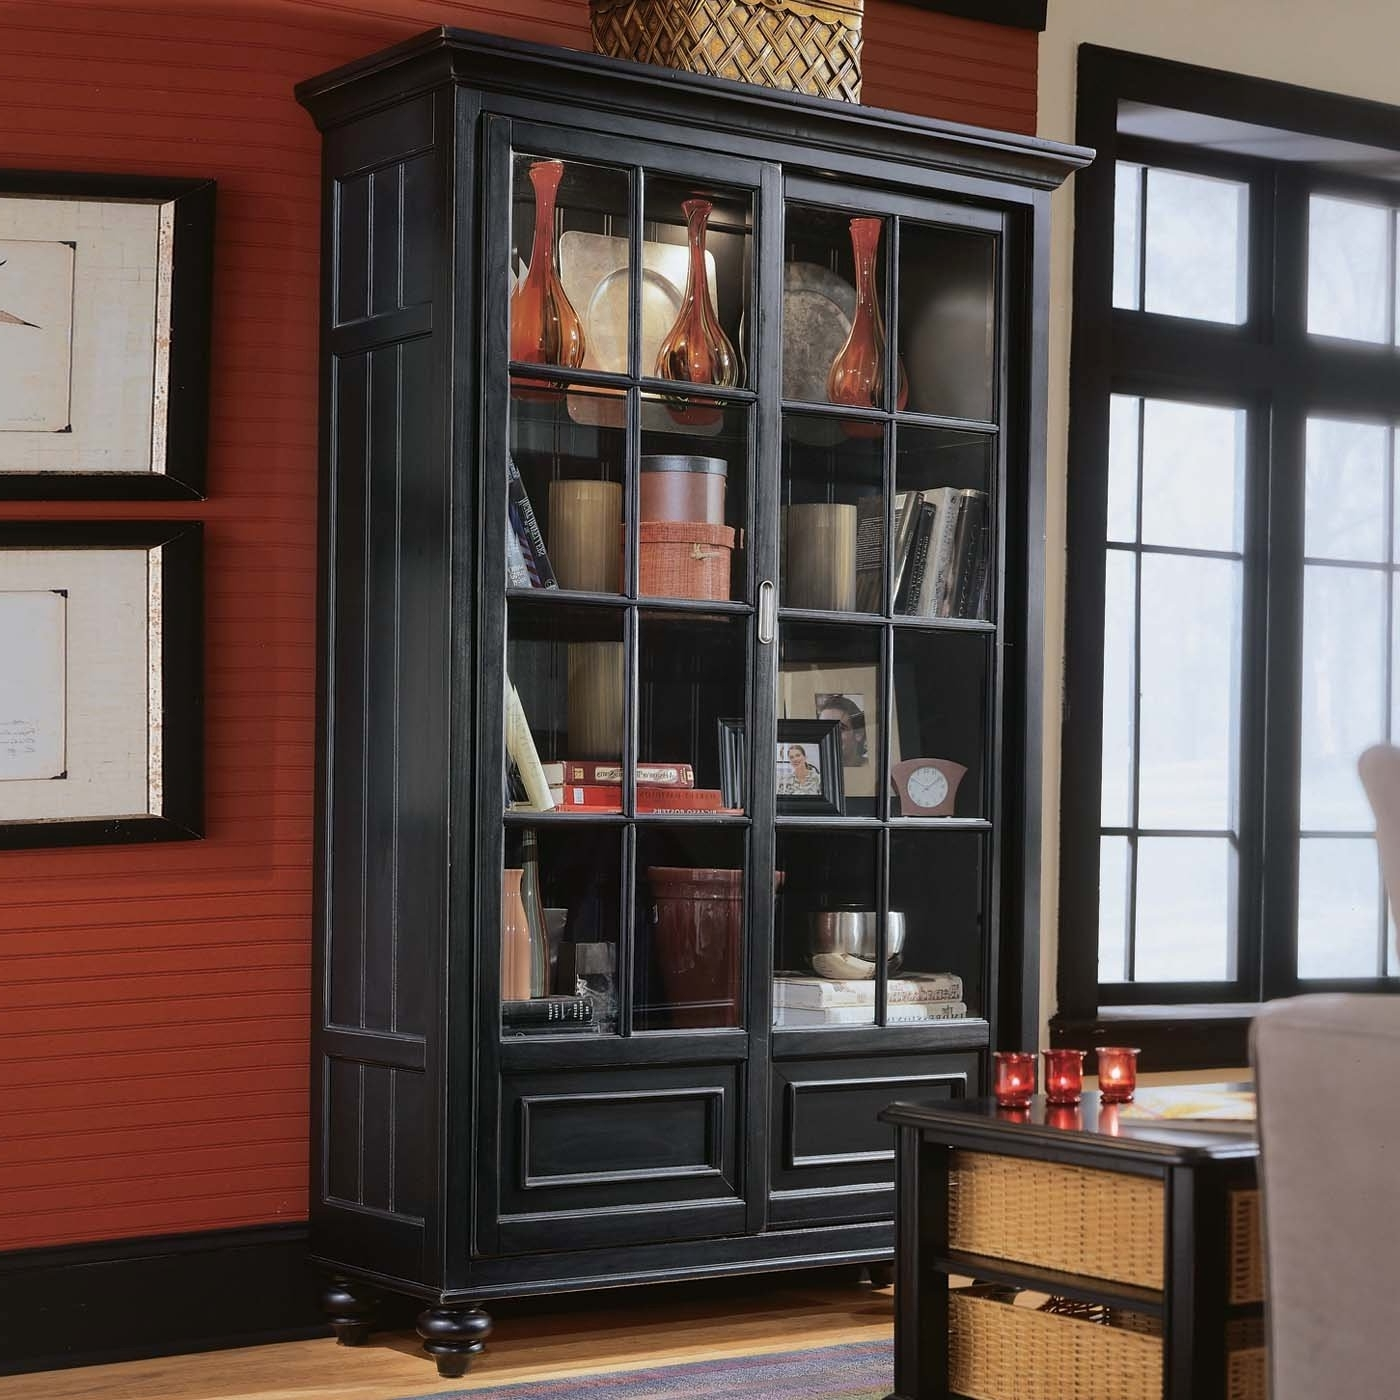 Well Known Black Bookcases With Glass Doors With Regard To Tall Black Wood Bookshelf With Glass Sliding Doors On Red Wall (View 11 of 15)